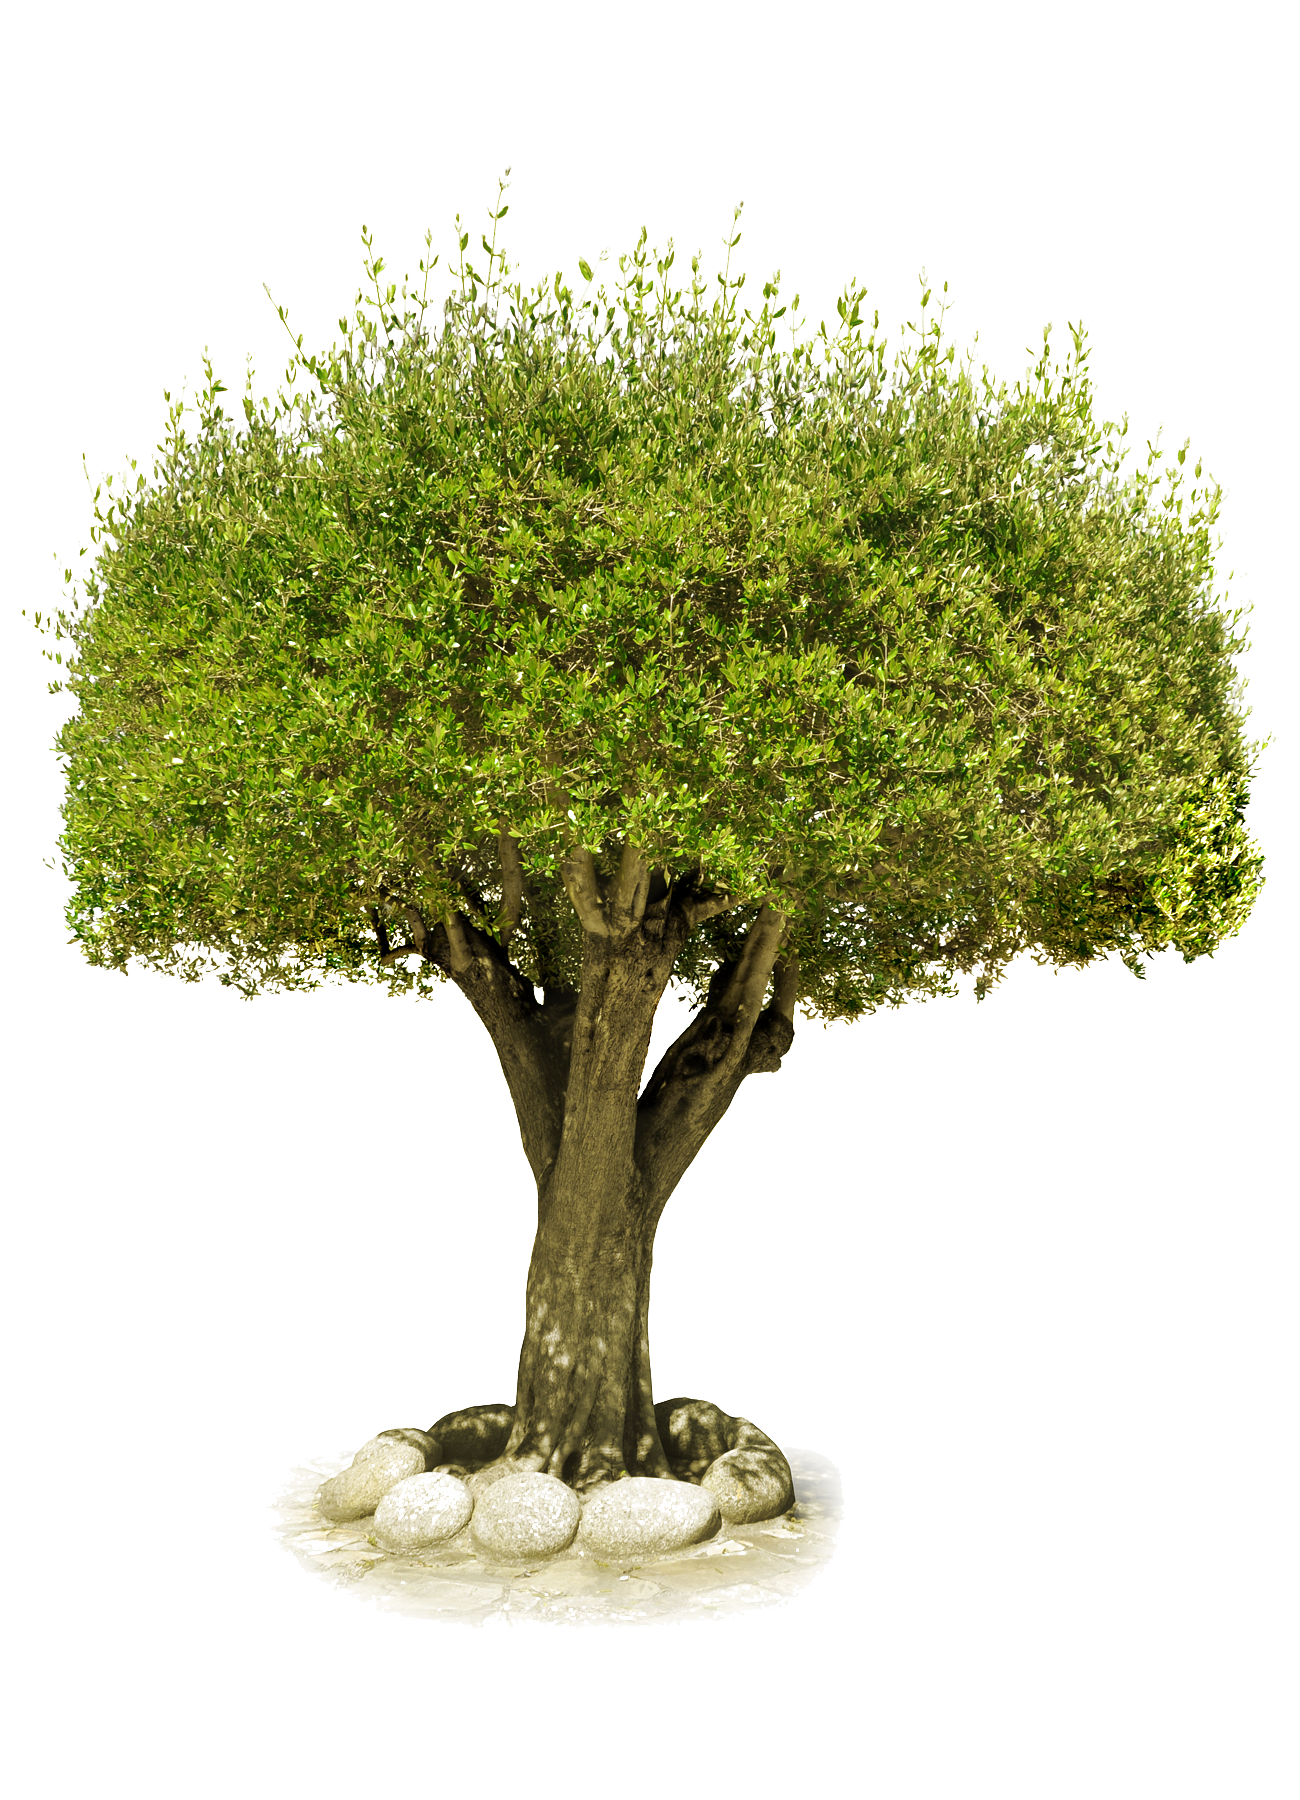 Png pictures free download. Tree image purepng transparent